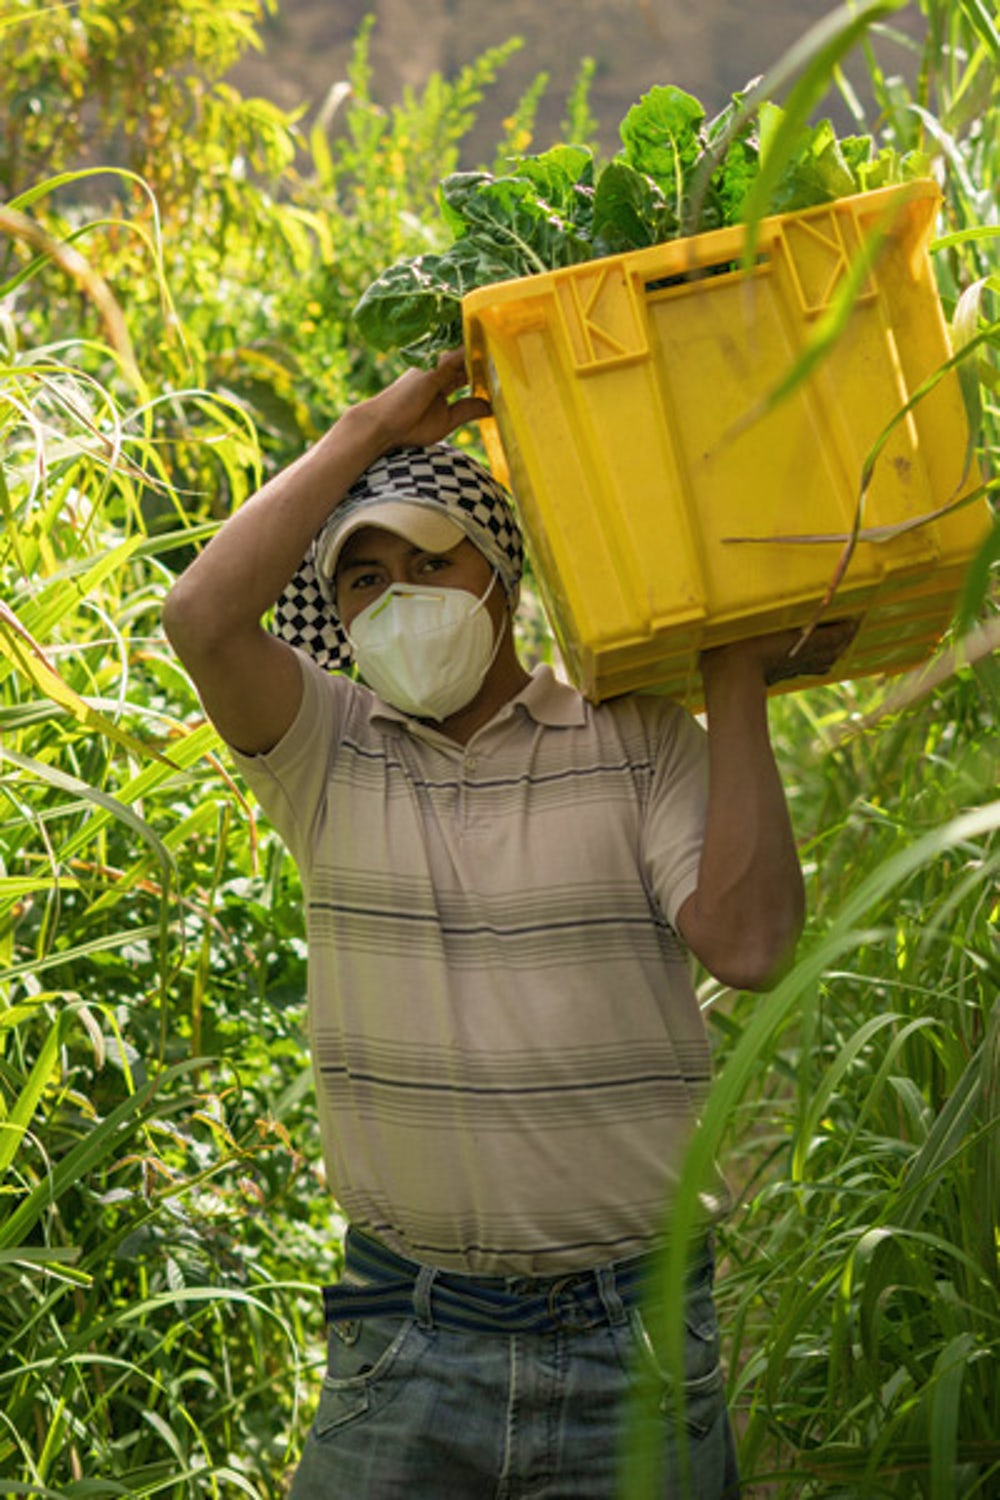 Man carries basket with vegetables through a field